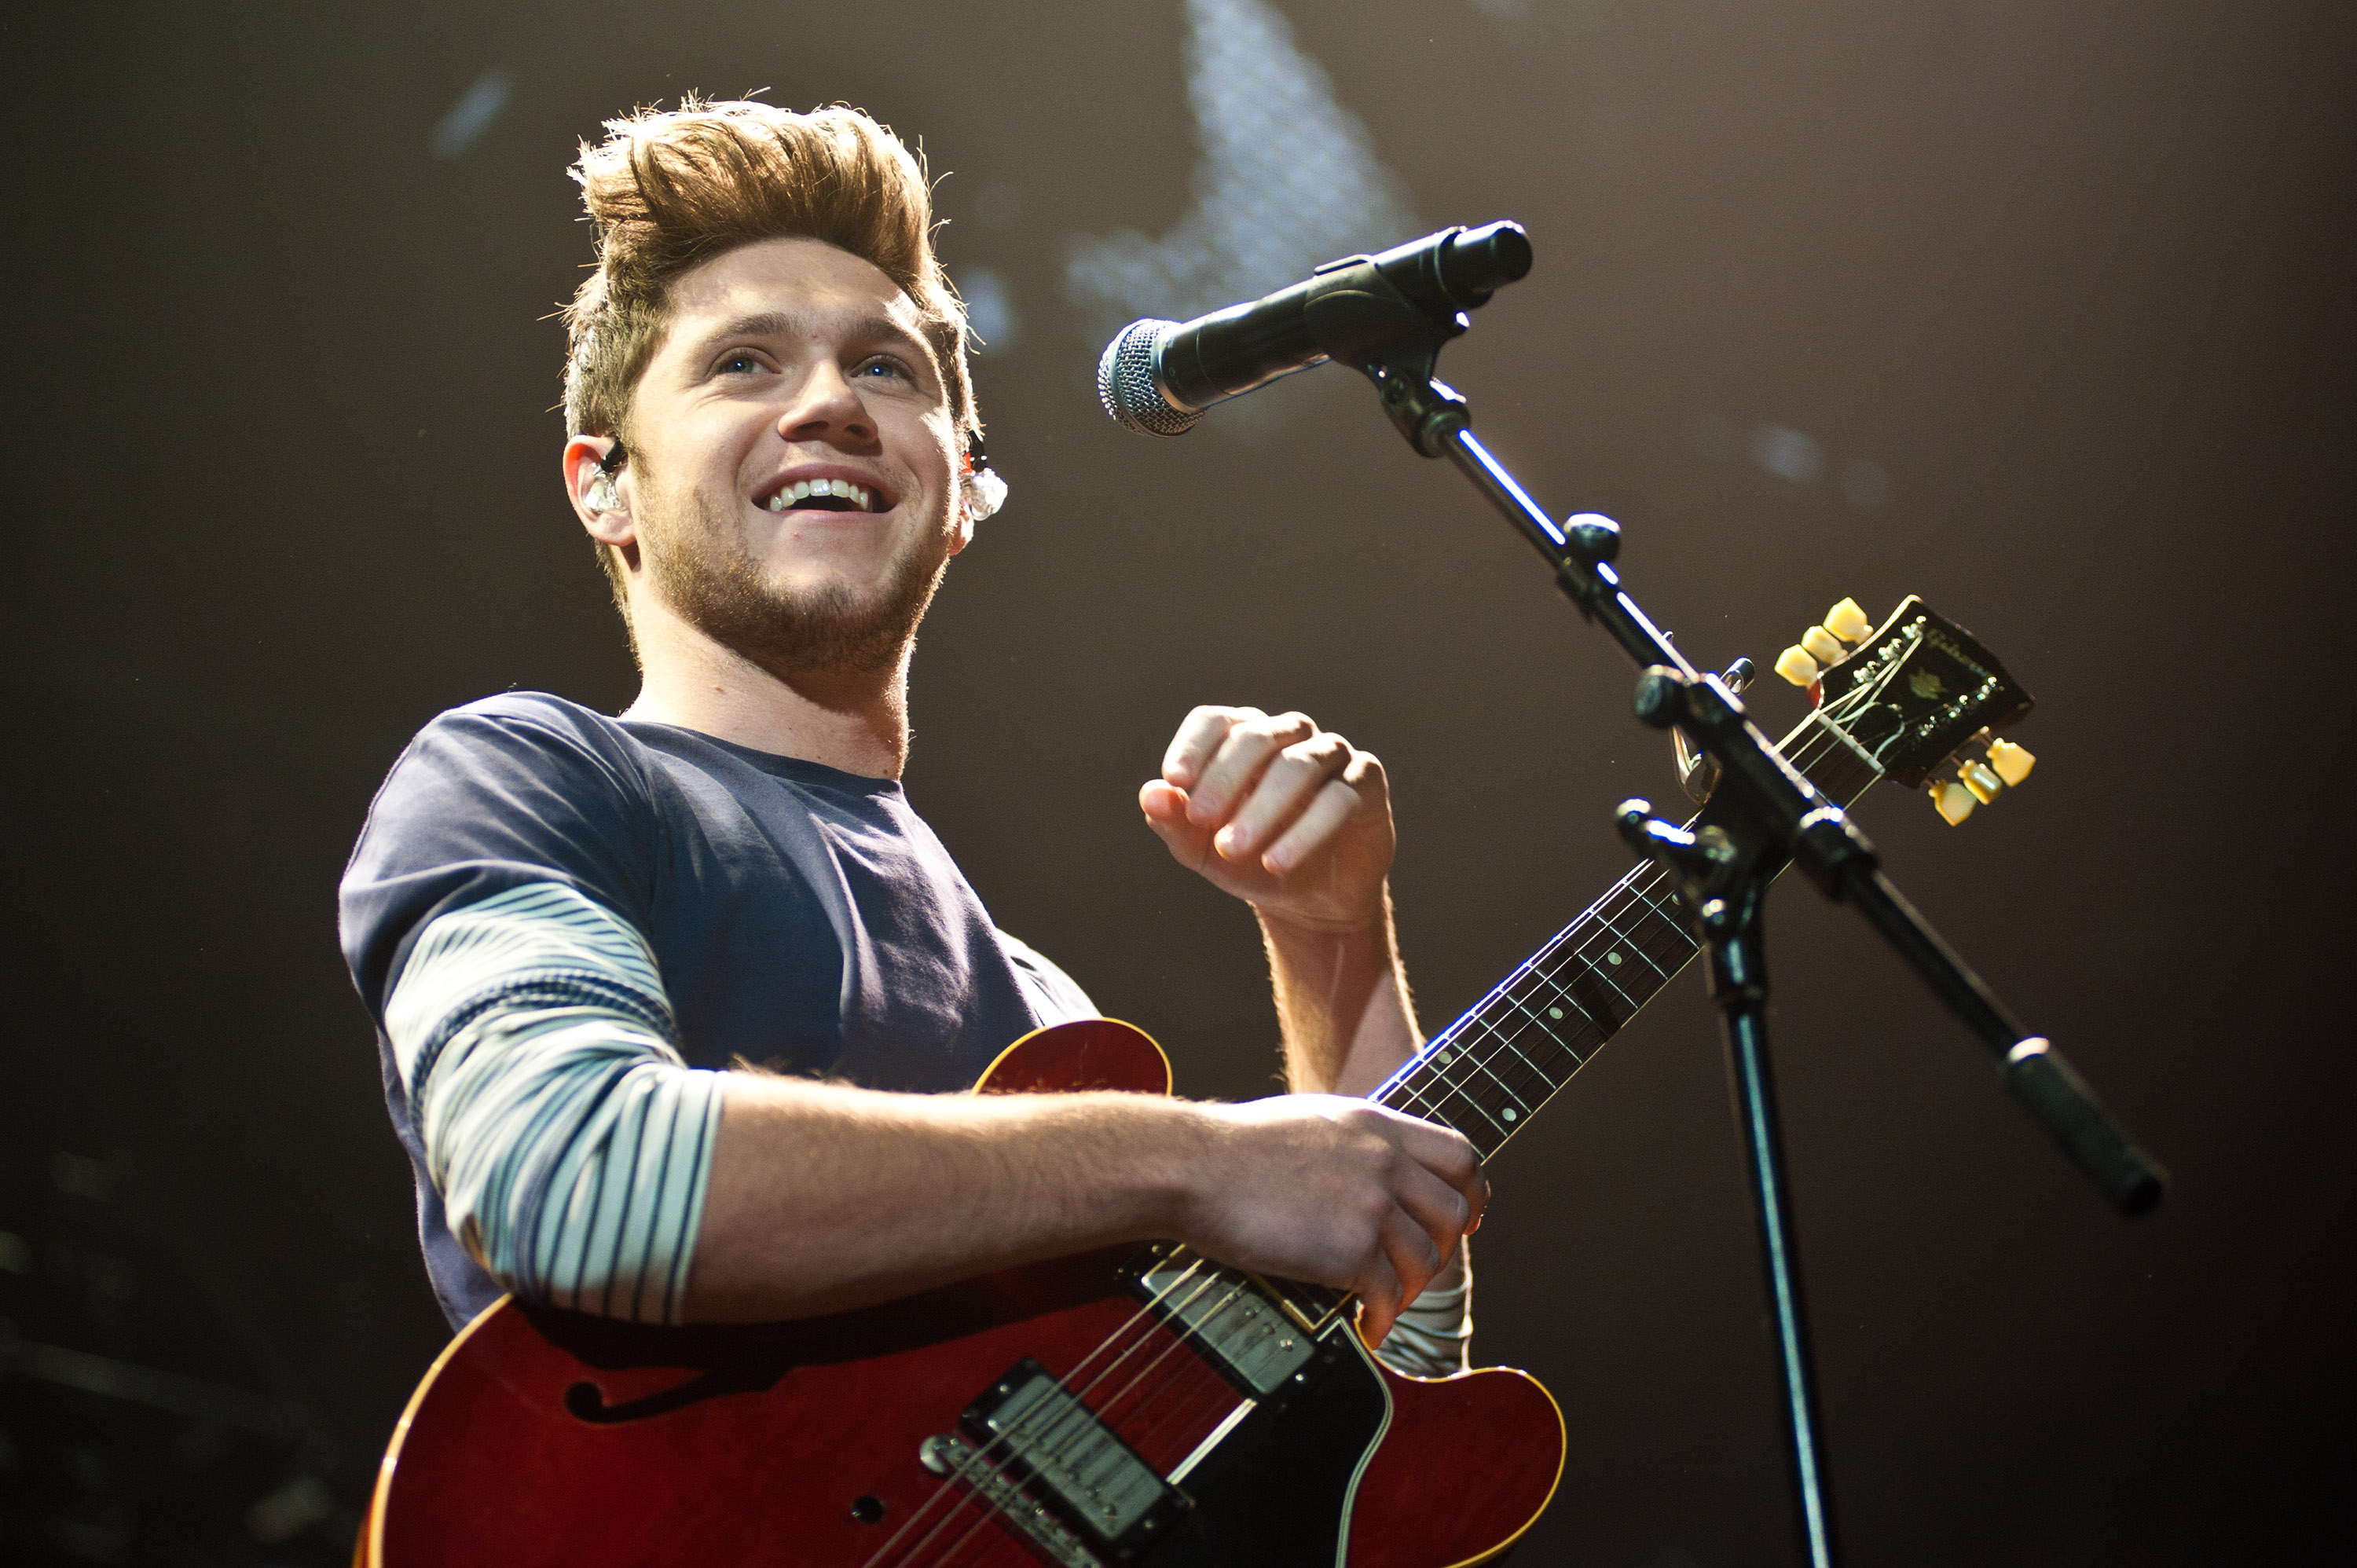 Niall Horan's new song is giving off serious Fleetwood Mac vibes